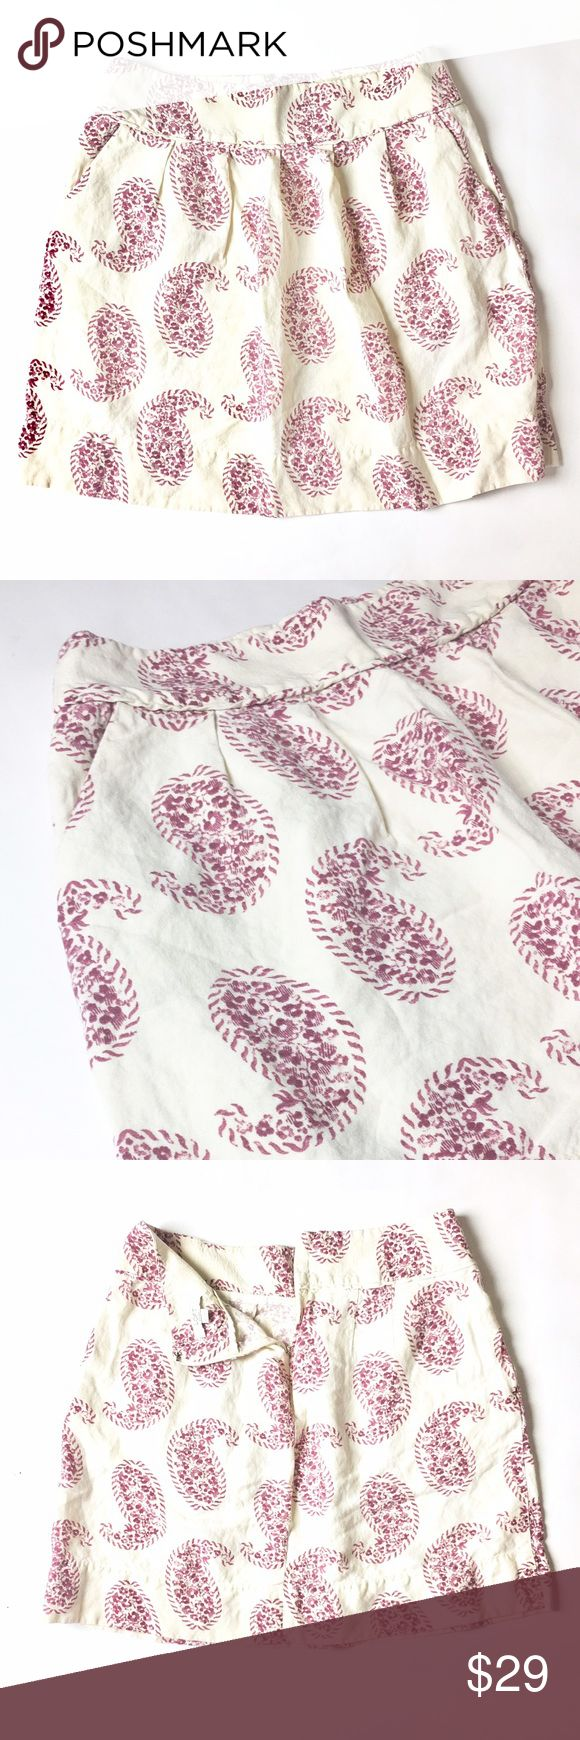 LOFT Petite Skirt Details: LOFT cream Petite skirt with paisley pink print. Size 4P in great condition.   Kate Harrington Boutique does not trade or negotiate price in the comment section. However, for most items we may consider reasonable offers.   Happy Poshing! LOFT Skirts